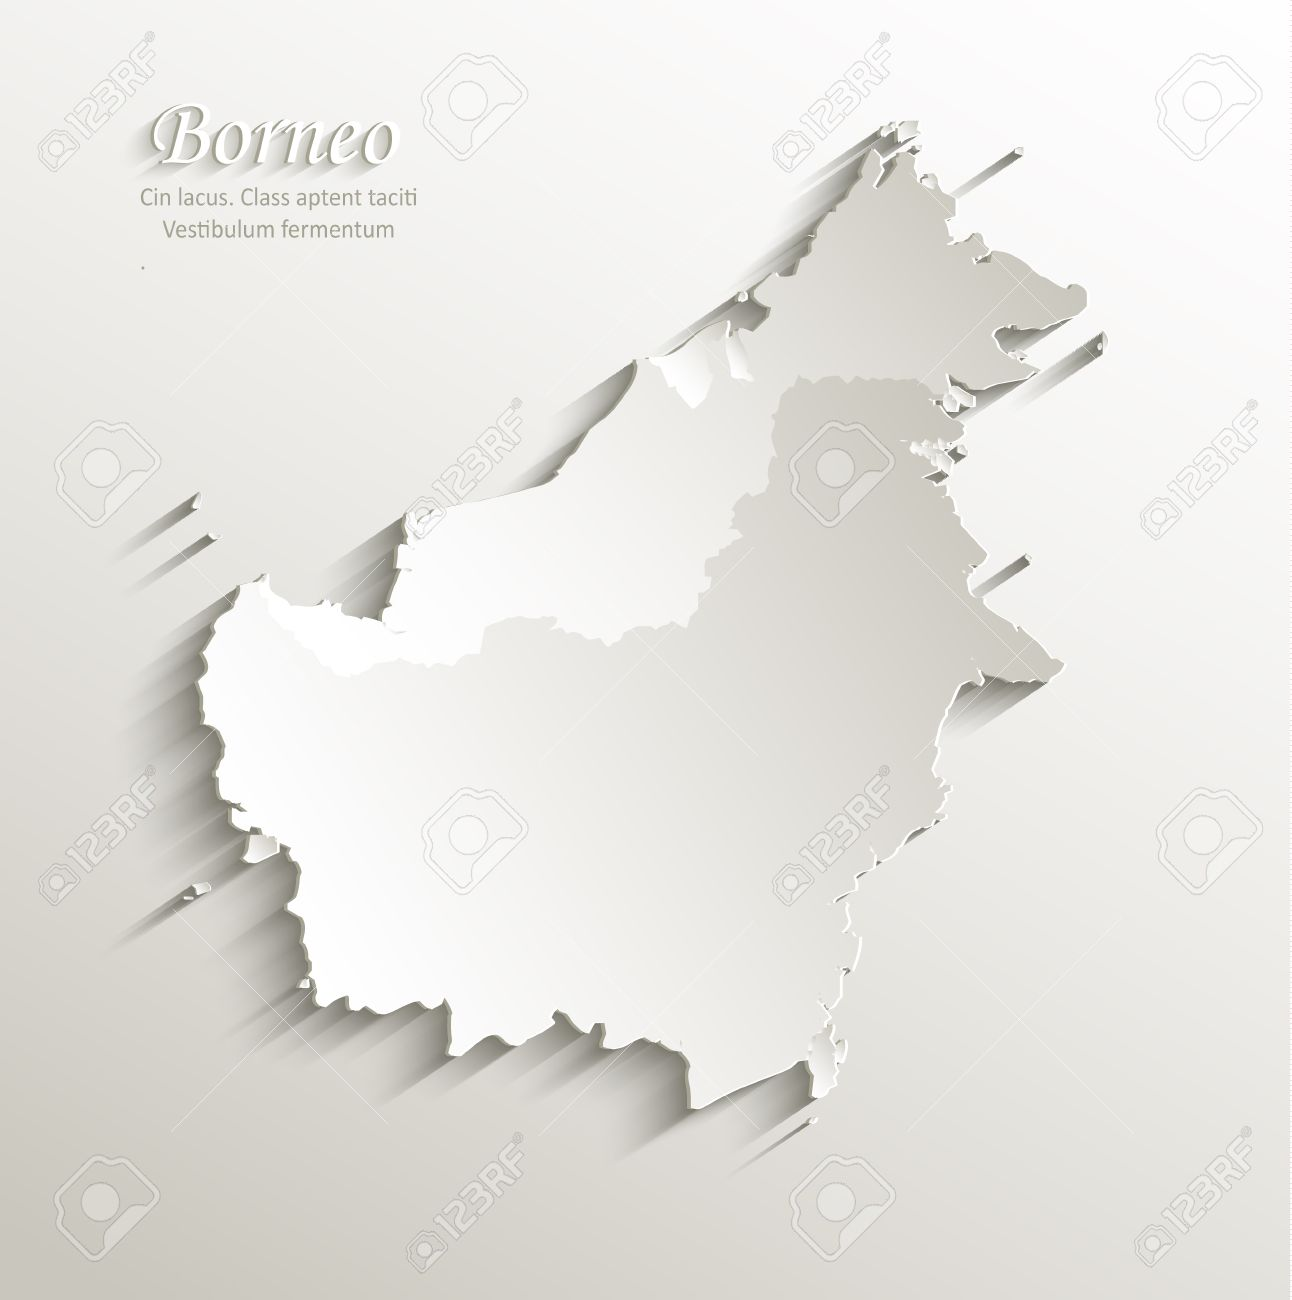 Borneo Map Card Paper 3D Natural Vector Malaysia Indonesia